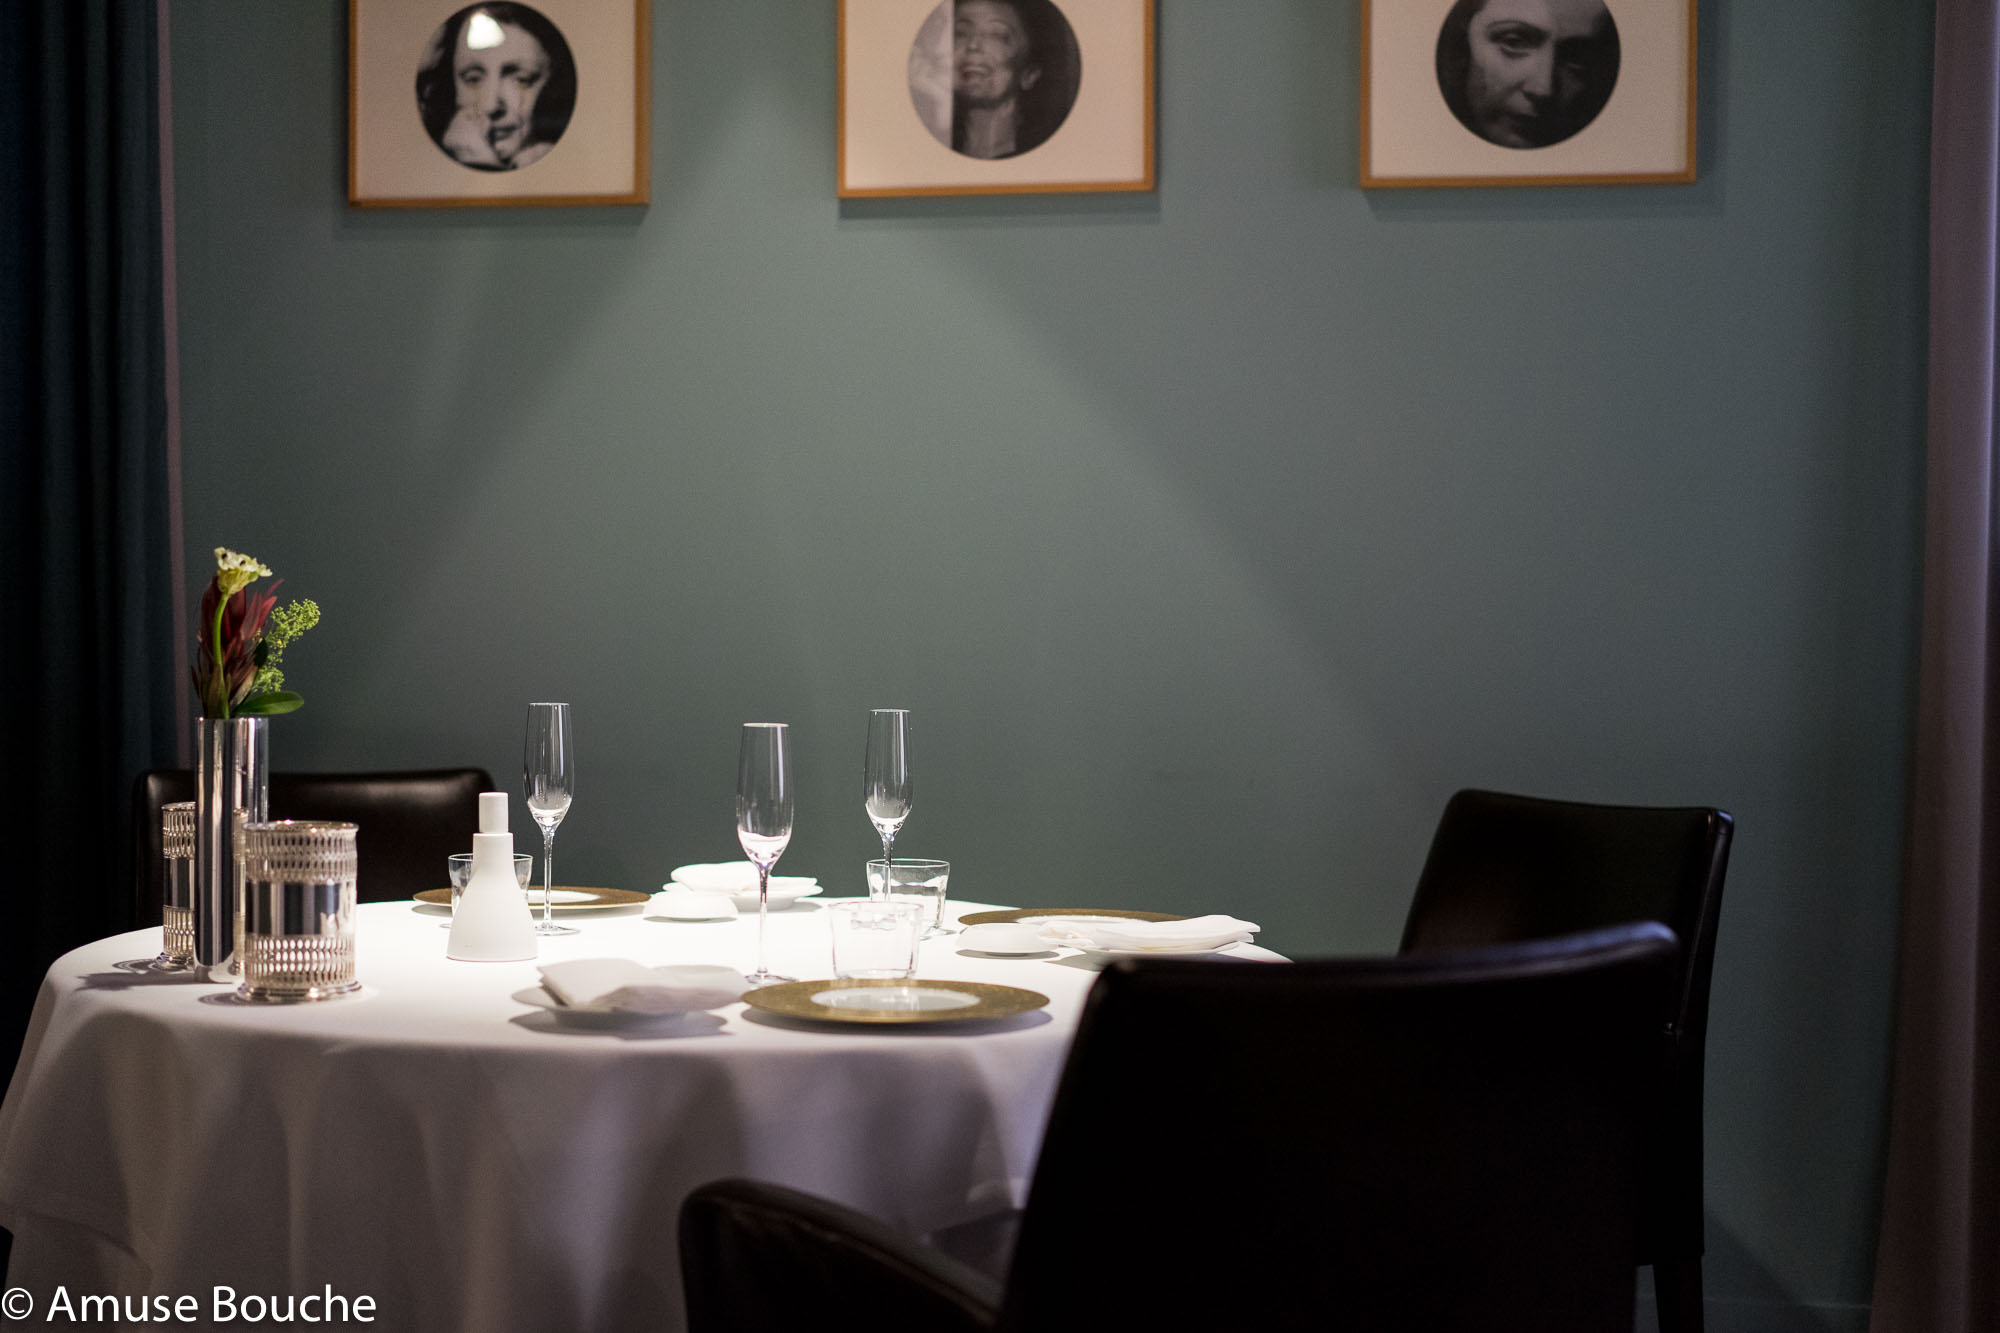 Osteria Francescana Modena table set